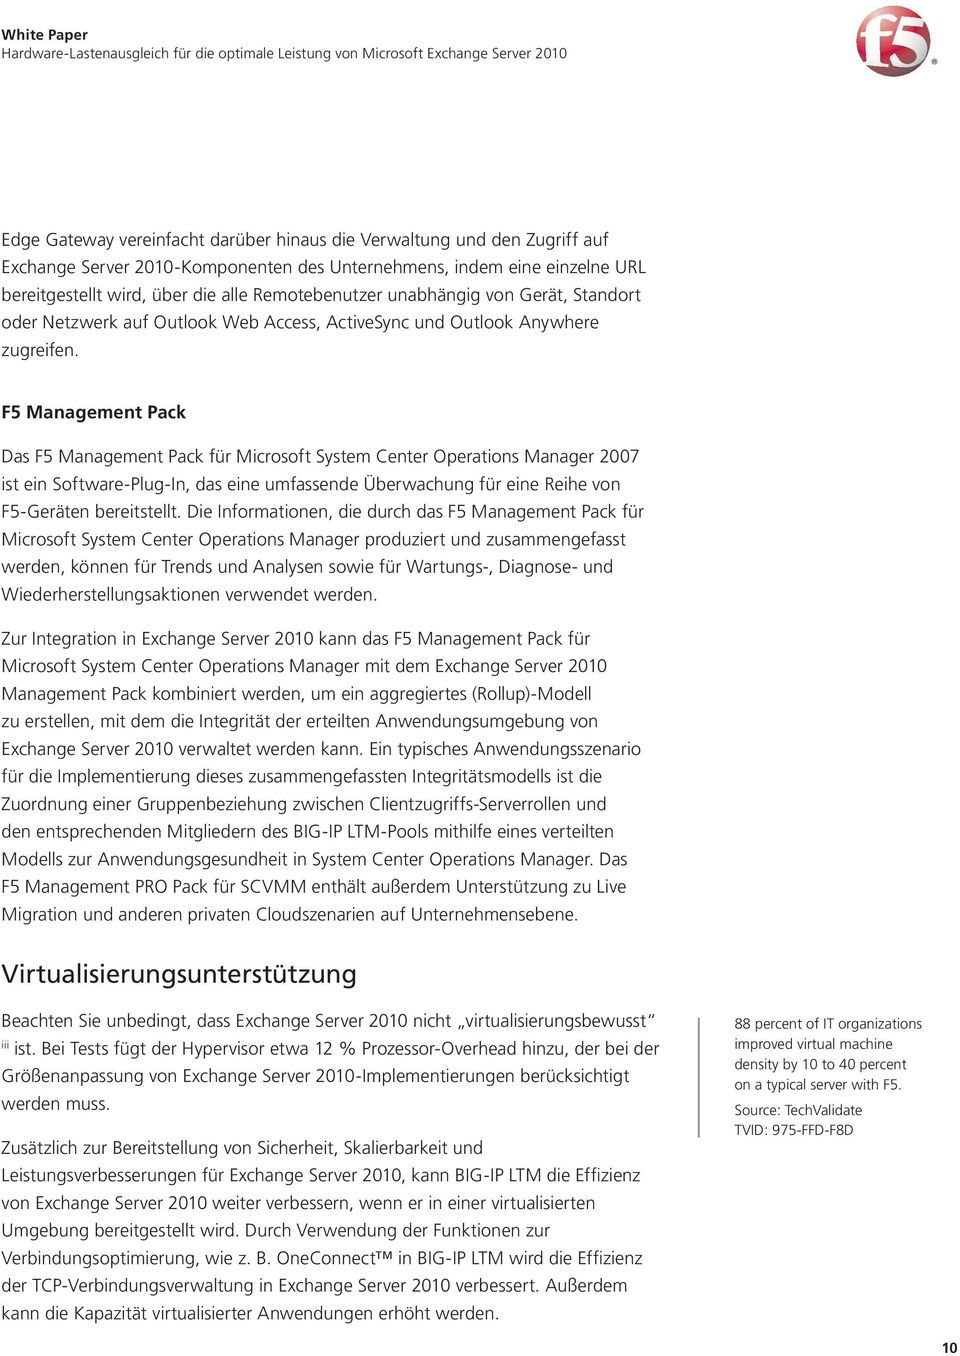 F5 Management Pack Das F5 Management Pack für Microsoft System Center Operations Manager 2007 ist ein Software-Plug-In, das eine umfassende Überwachung für eine Reihe von F5-Geräten bereitstellt.